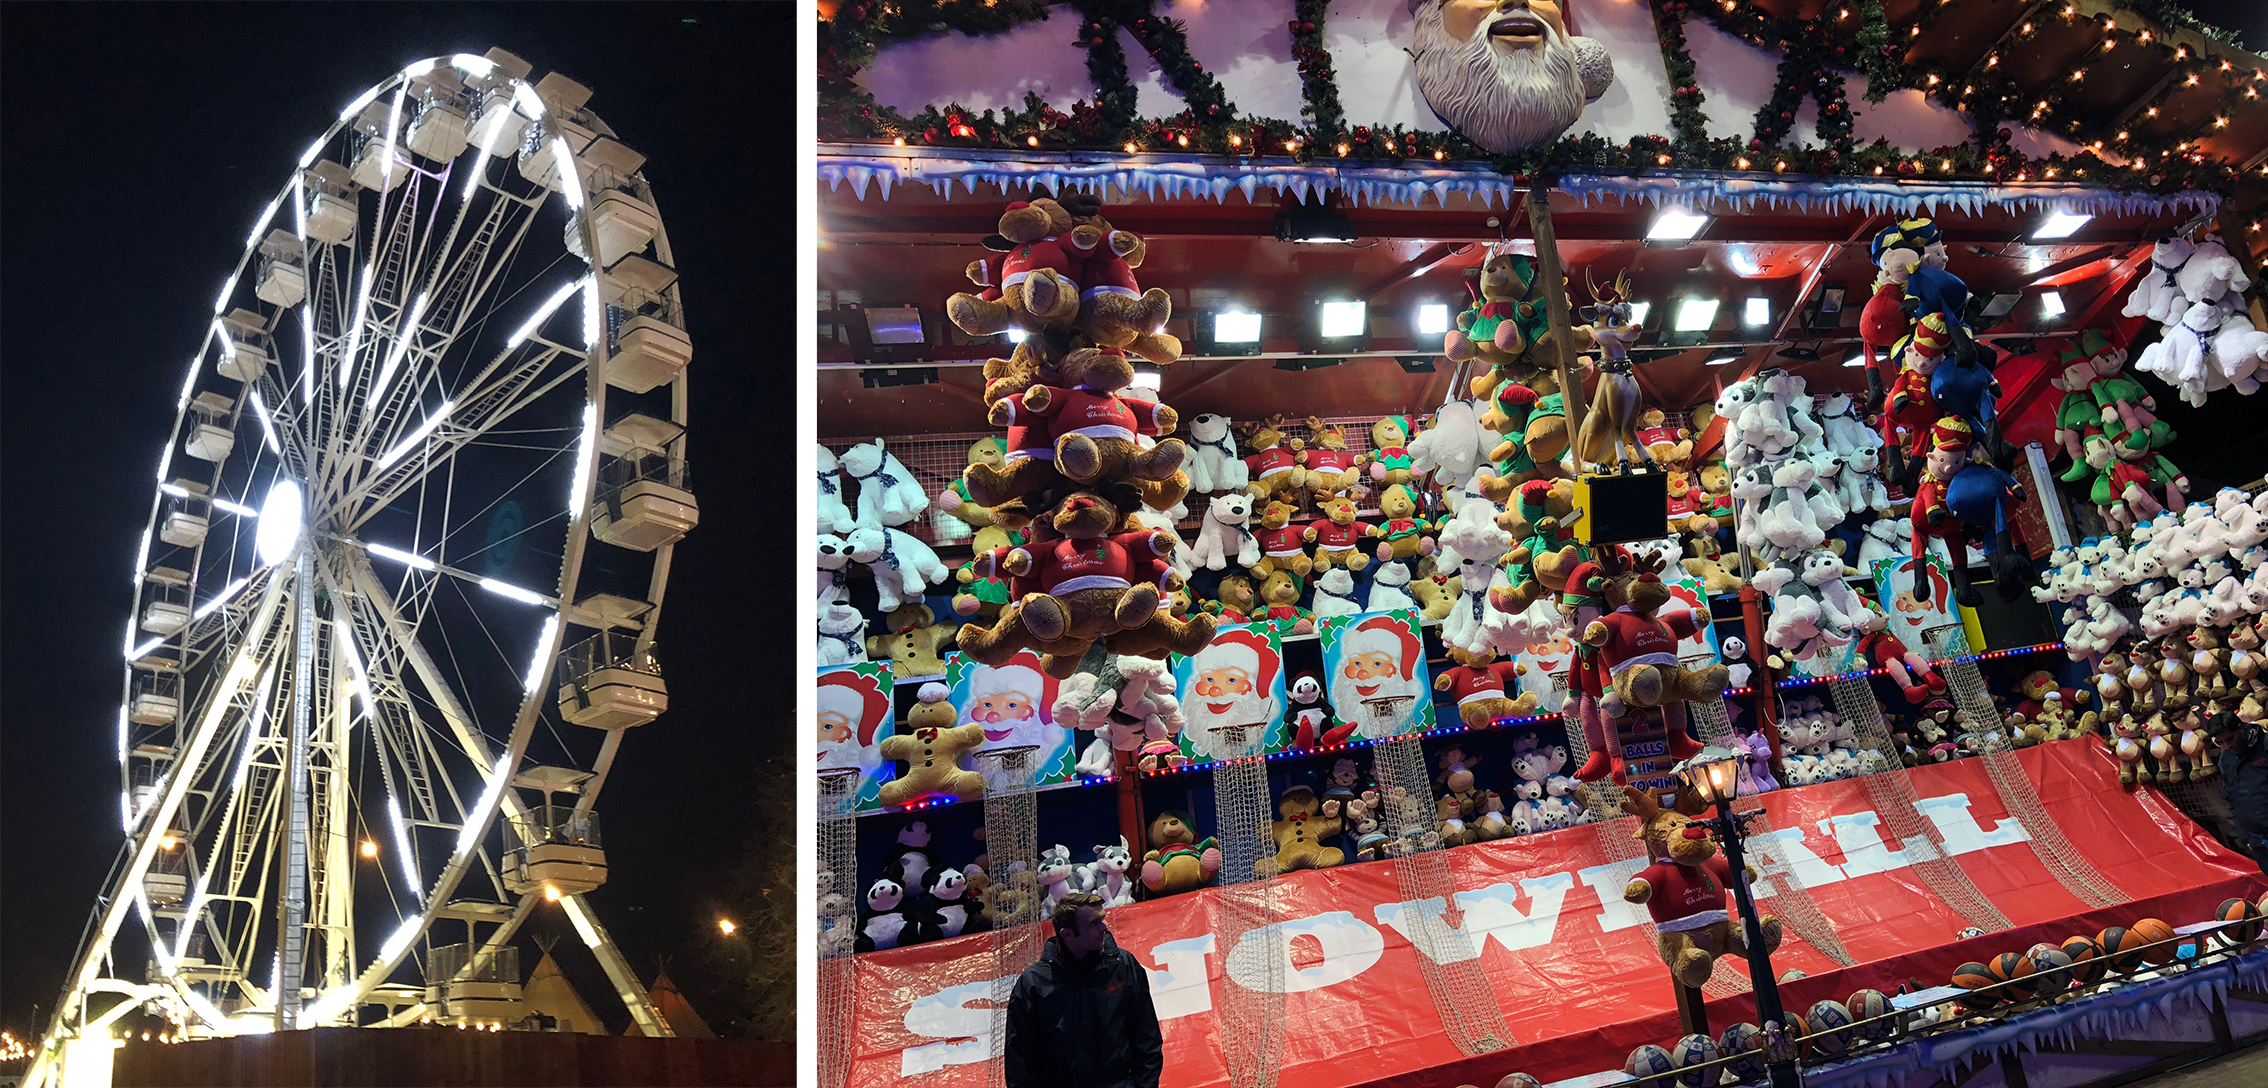 The Big Wheel ride and one of the giant carnival games - shoot some hoops to win a stuffed animal